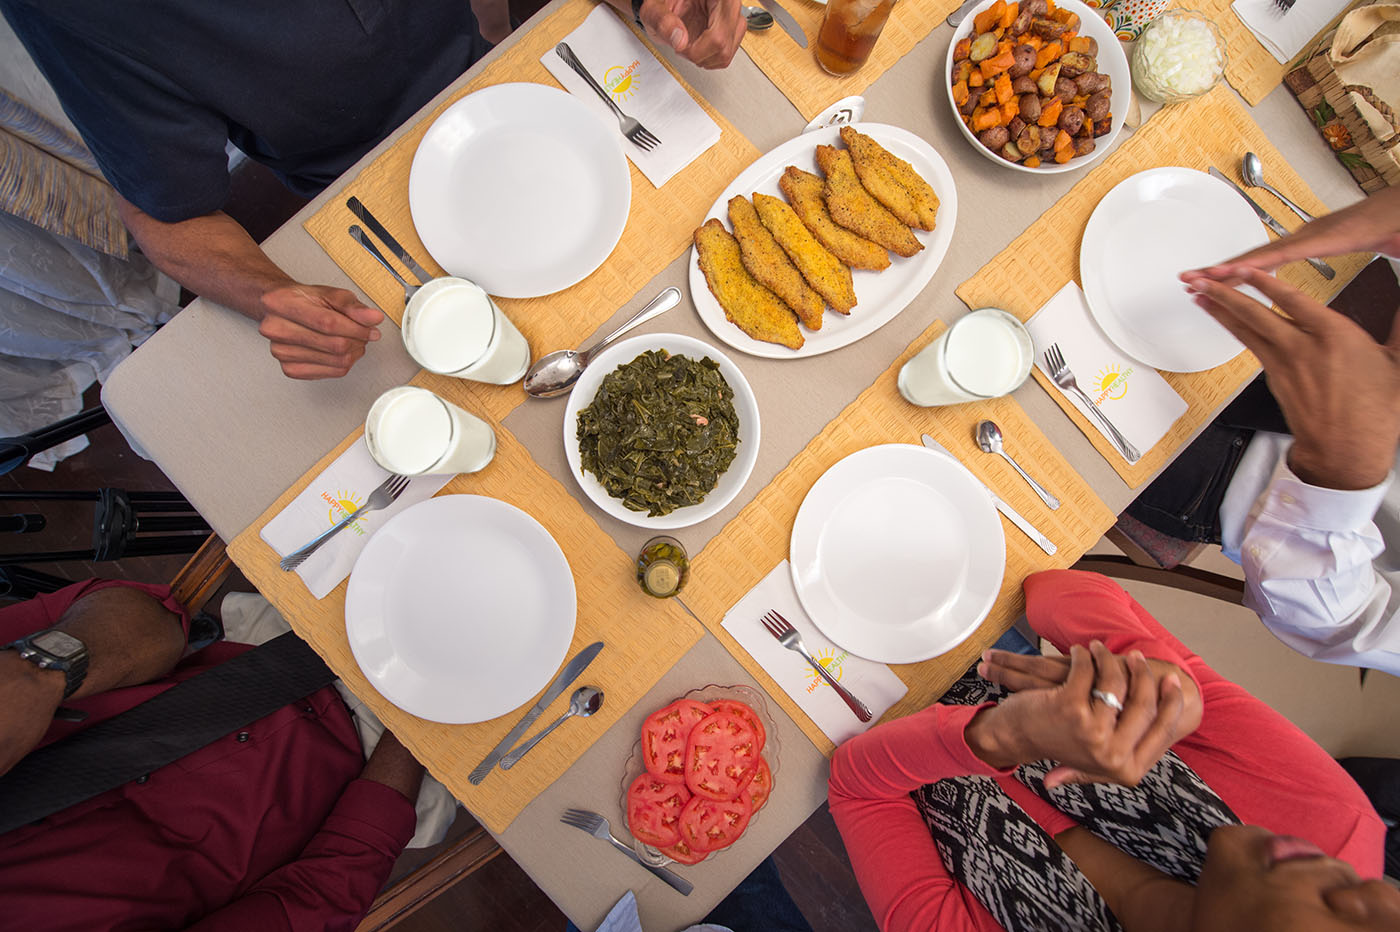 A family sitting around a set table with sliced tomatoes, greens, catfish and roasted potatoes in the center.